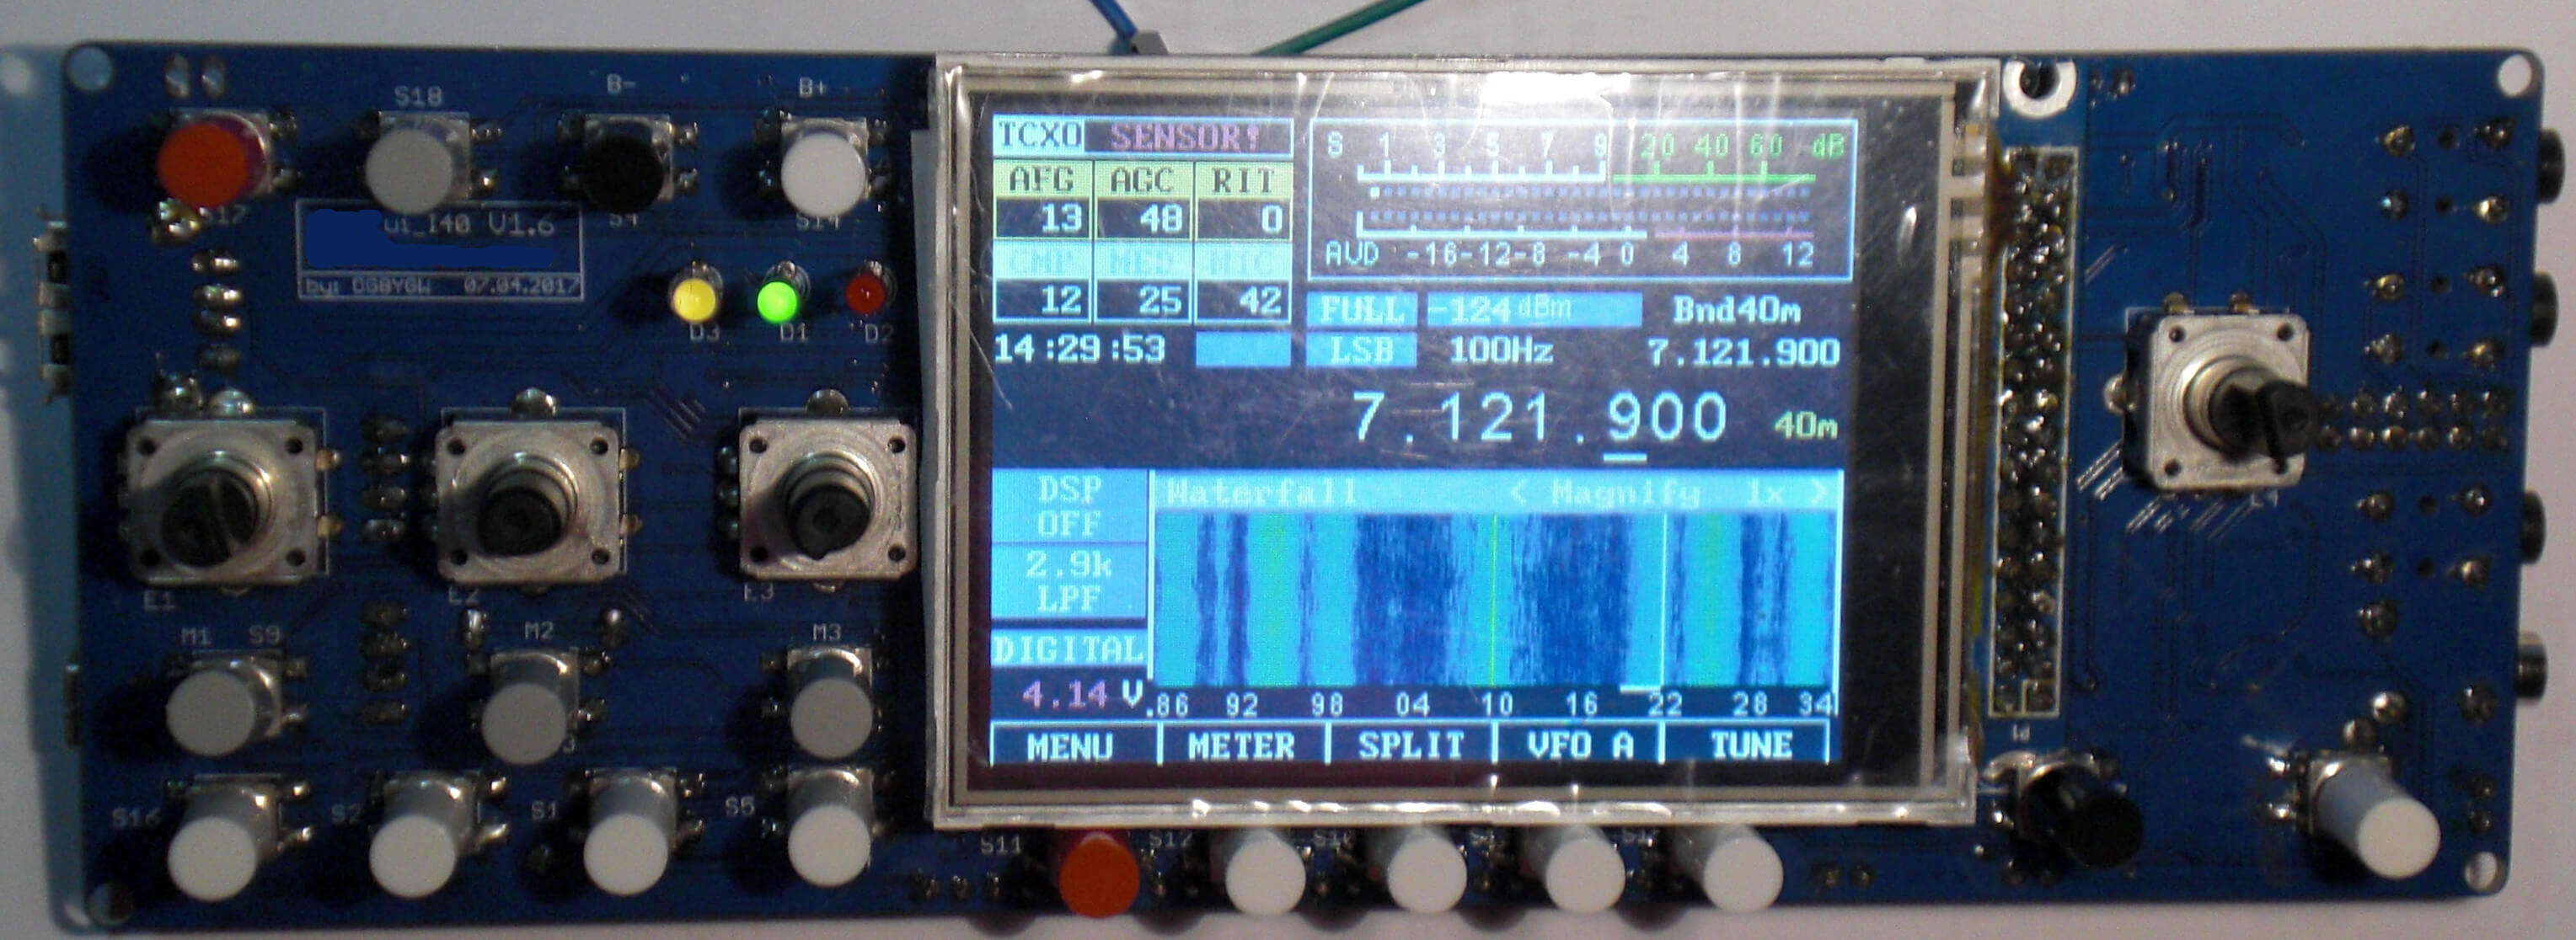 The Open Source OVI-40 SDR Transceiver